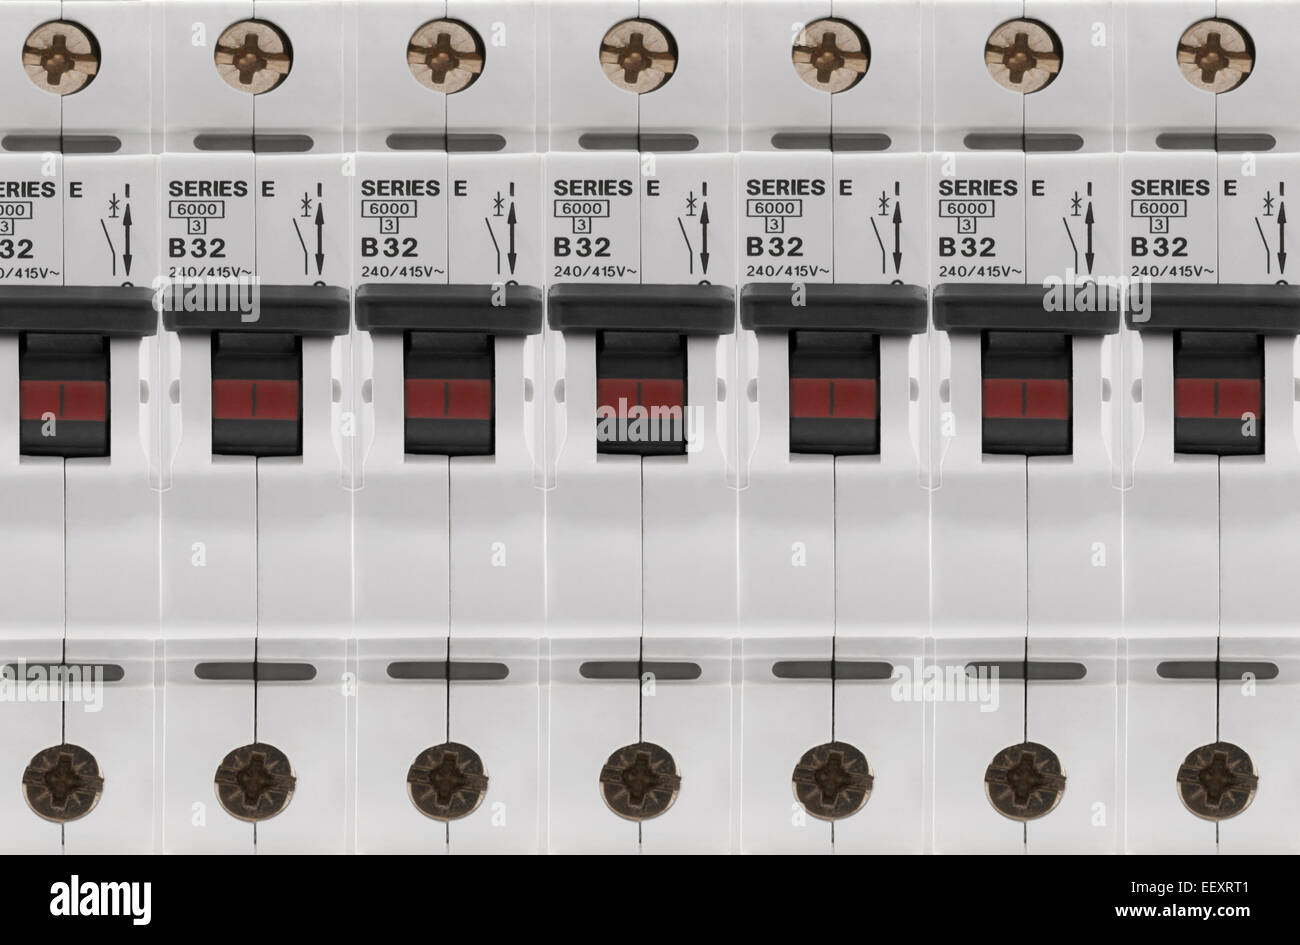 Fuse Box Or Circuit Breaker Panel : Electrical circuit breaker fuse box switches stock photo